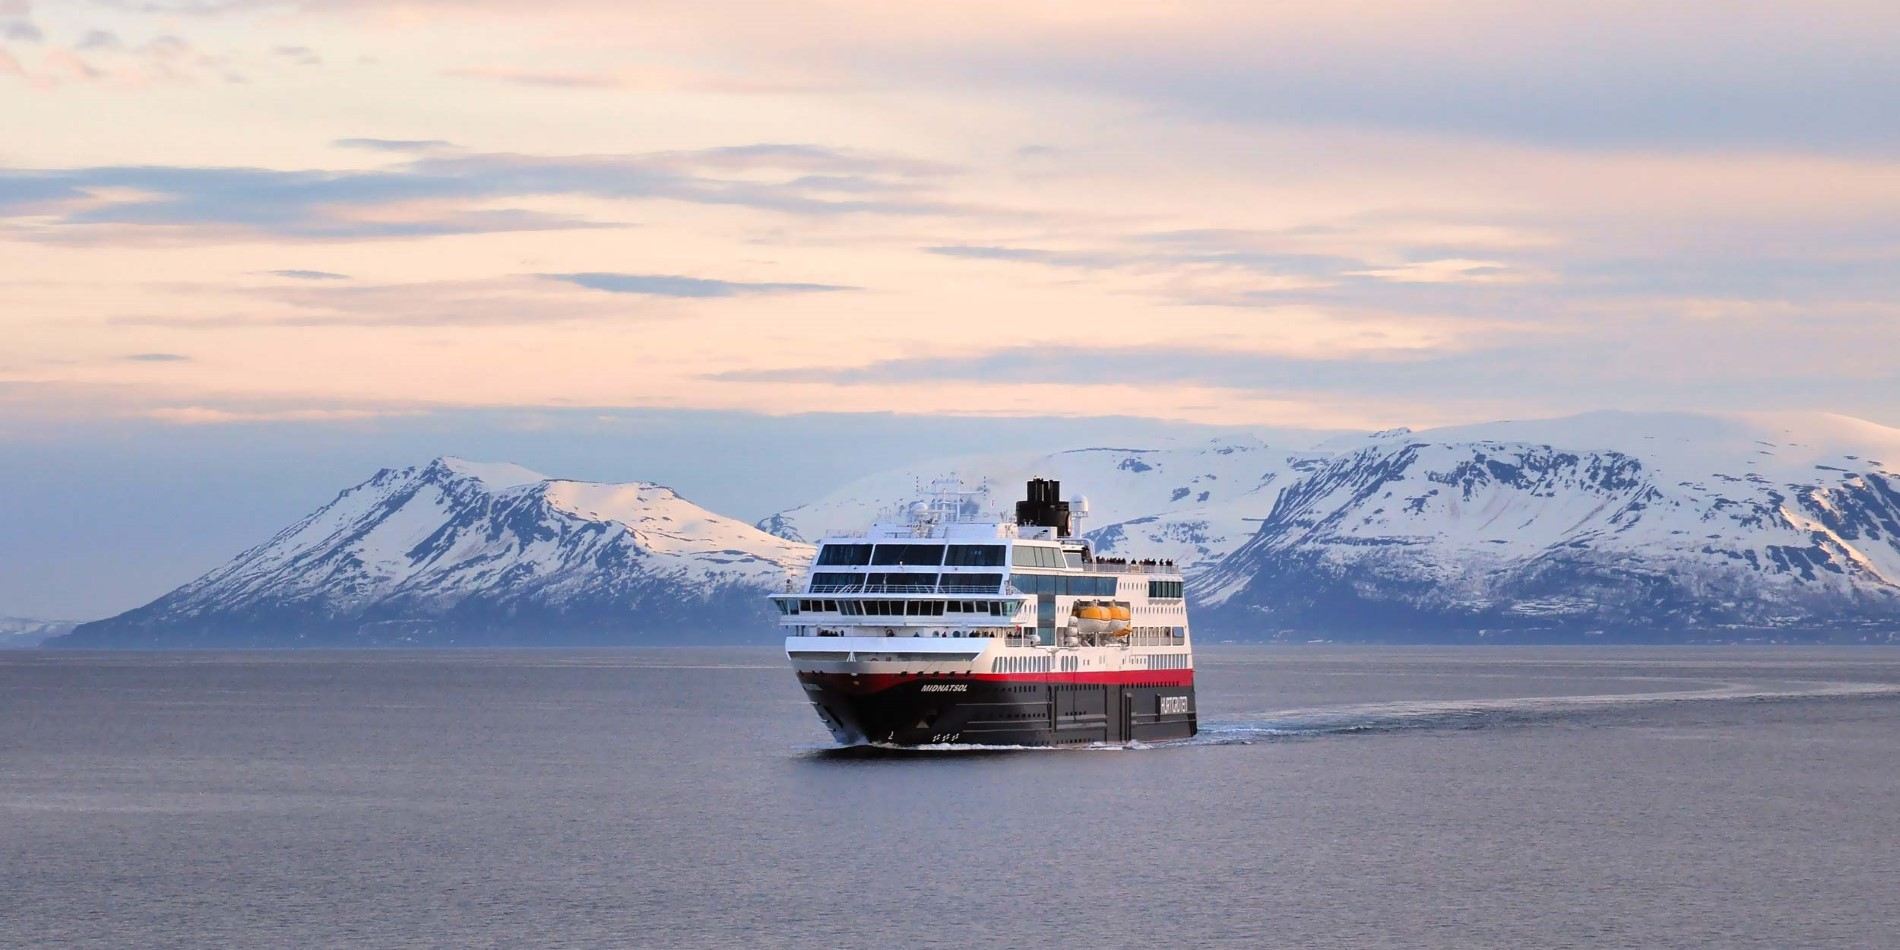 2500x1250_MS-Midnatsol_Between-Skjervoy-and-Tromso_BY_Nicolas-Lietaer_Guest-image.jpg